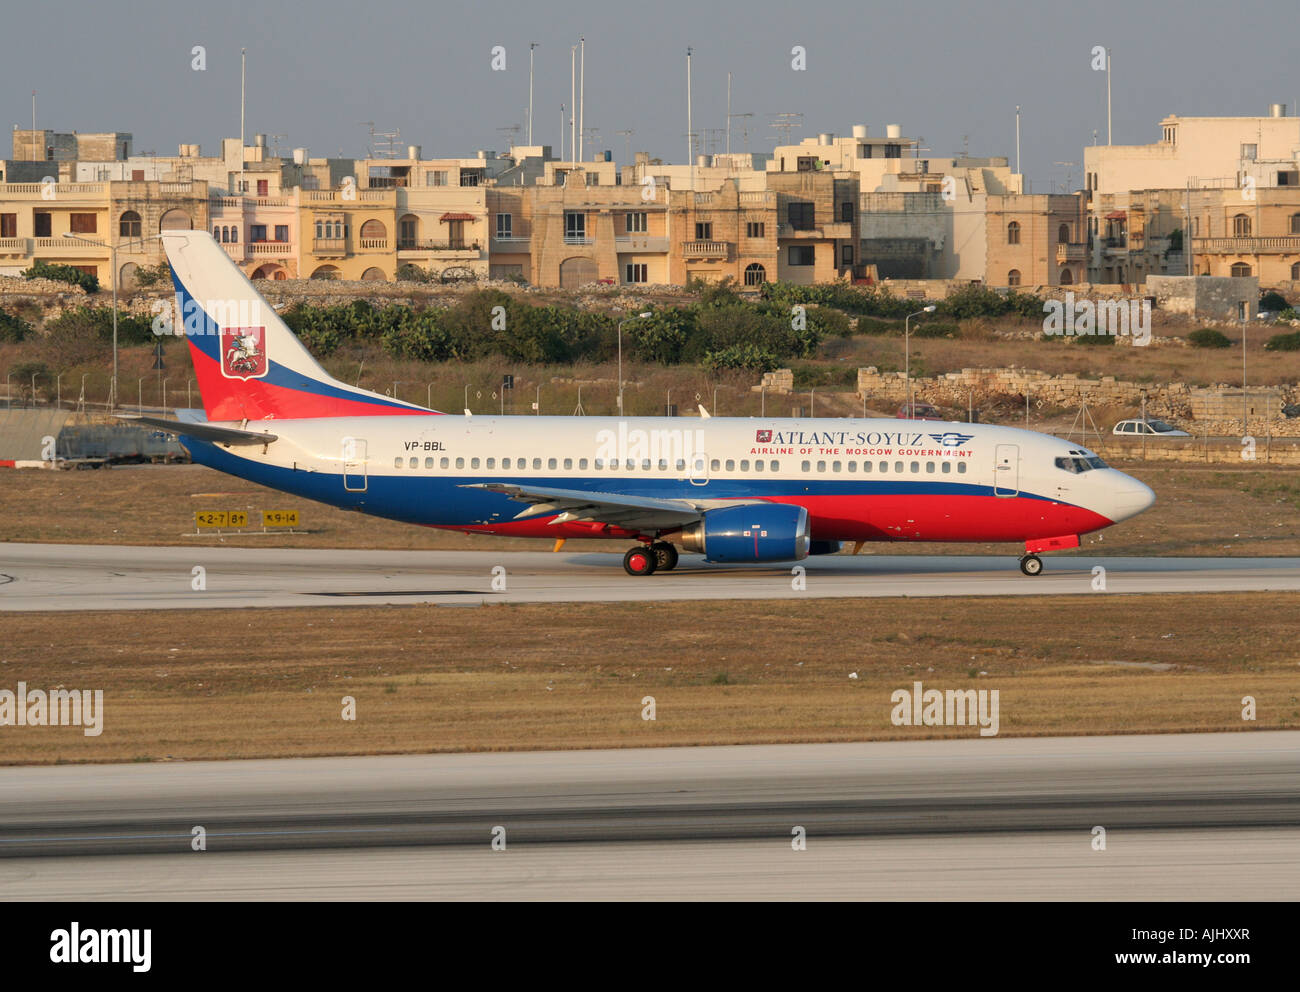 Atlant-Soyuz Airlines Boeing 737-300 taxiing for departure from Malta - Stock Image